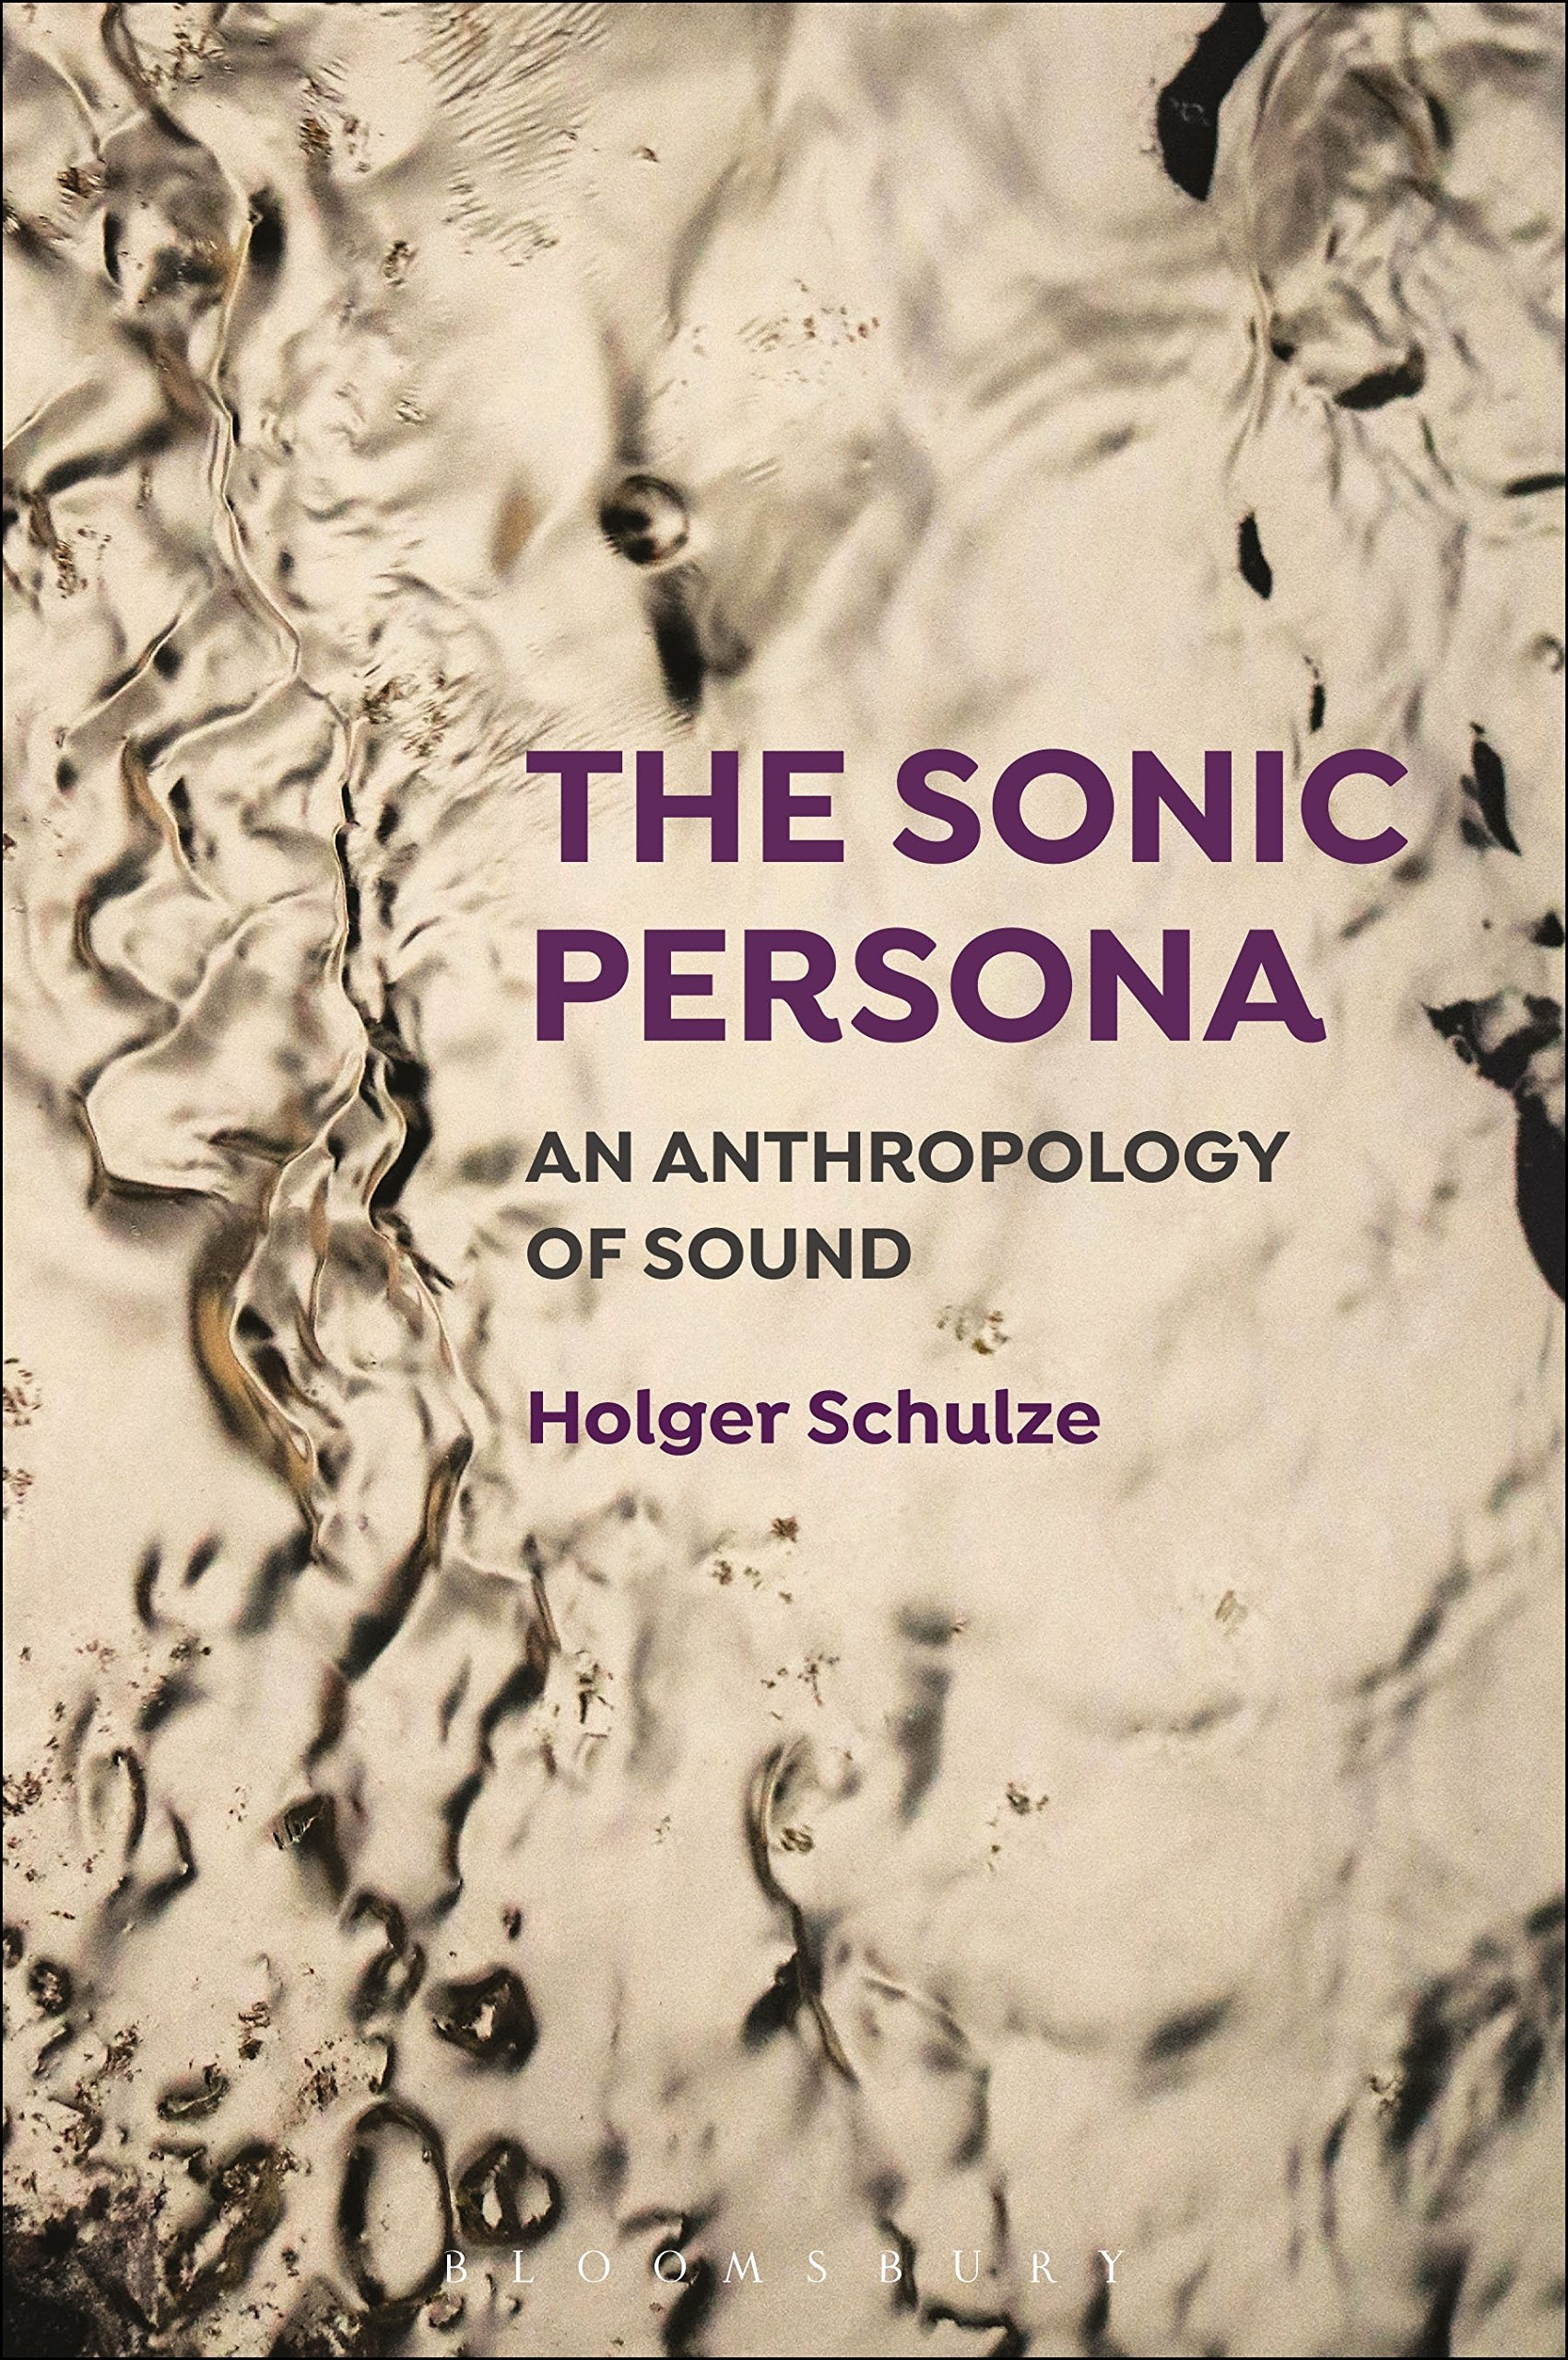 Schulze H. The Sonic Persona: An Anthropology of Sound. N.Y.: Bloomsbury Academic, 2018